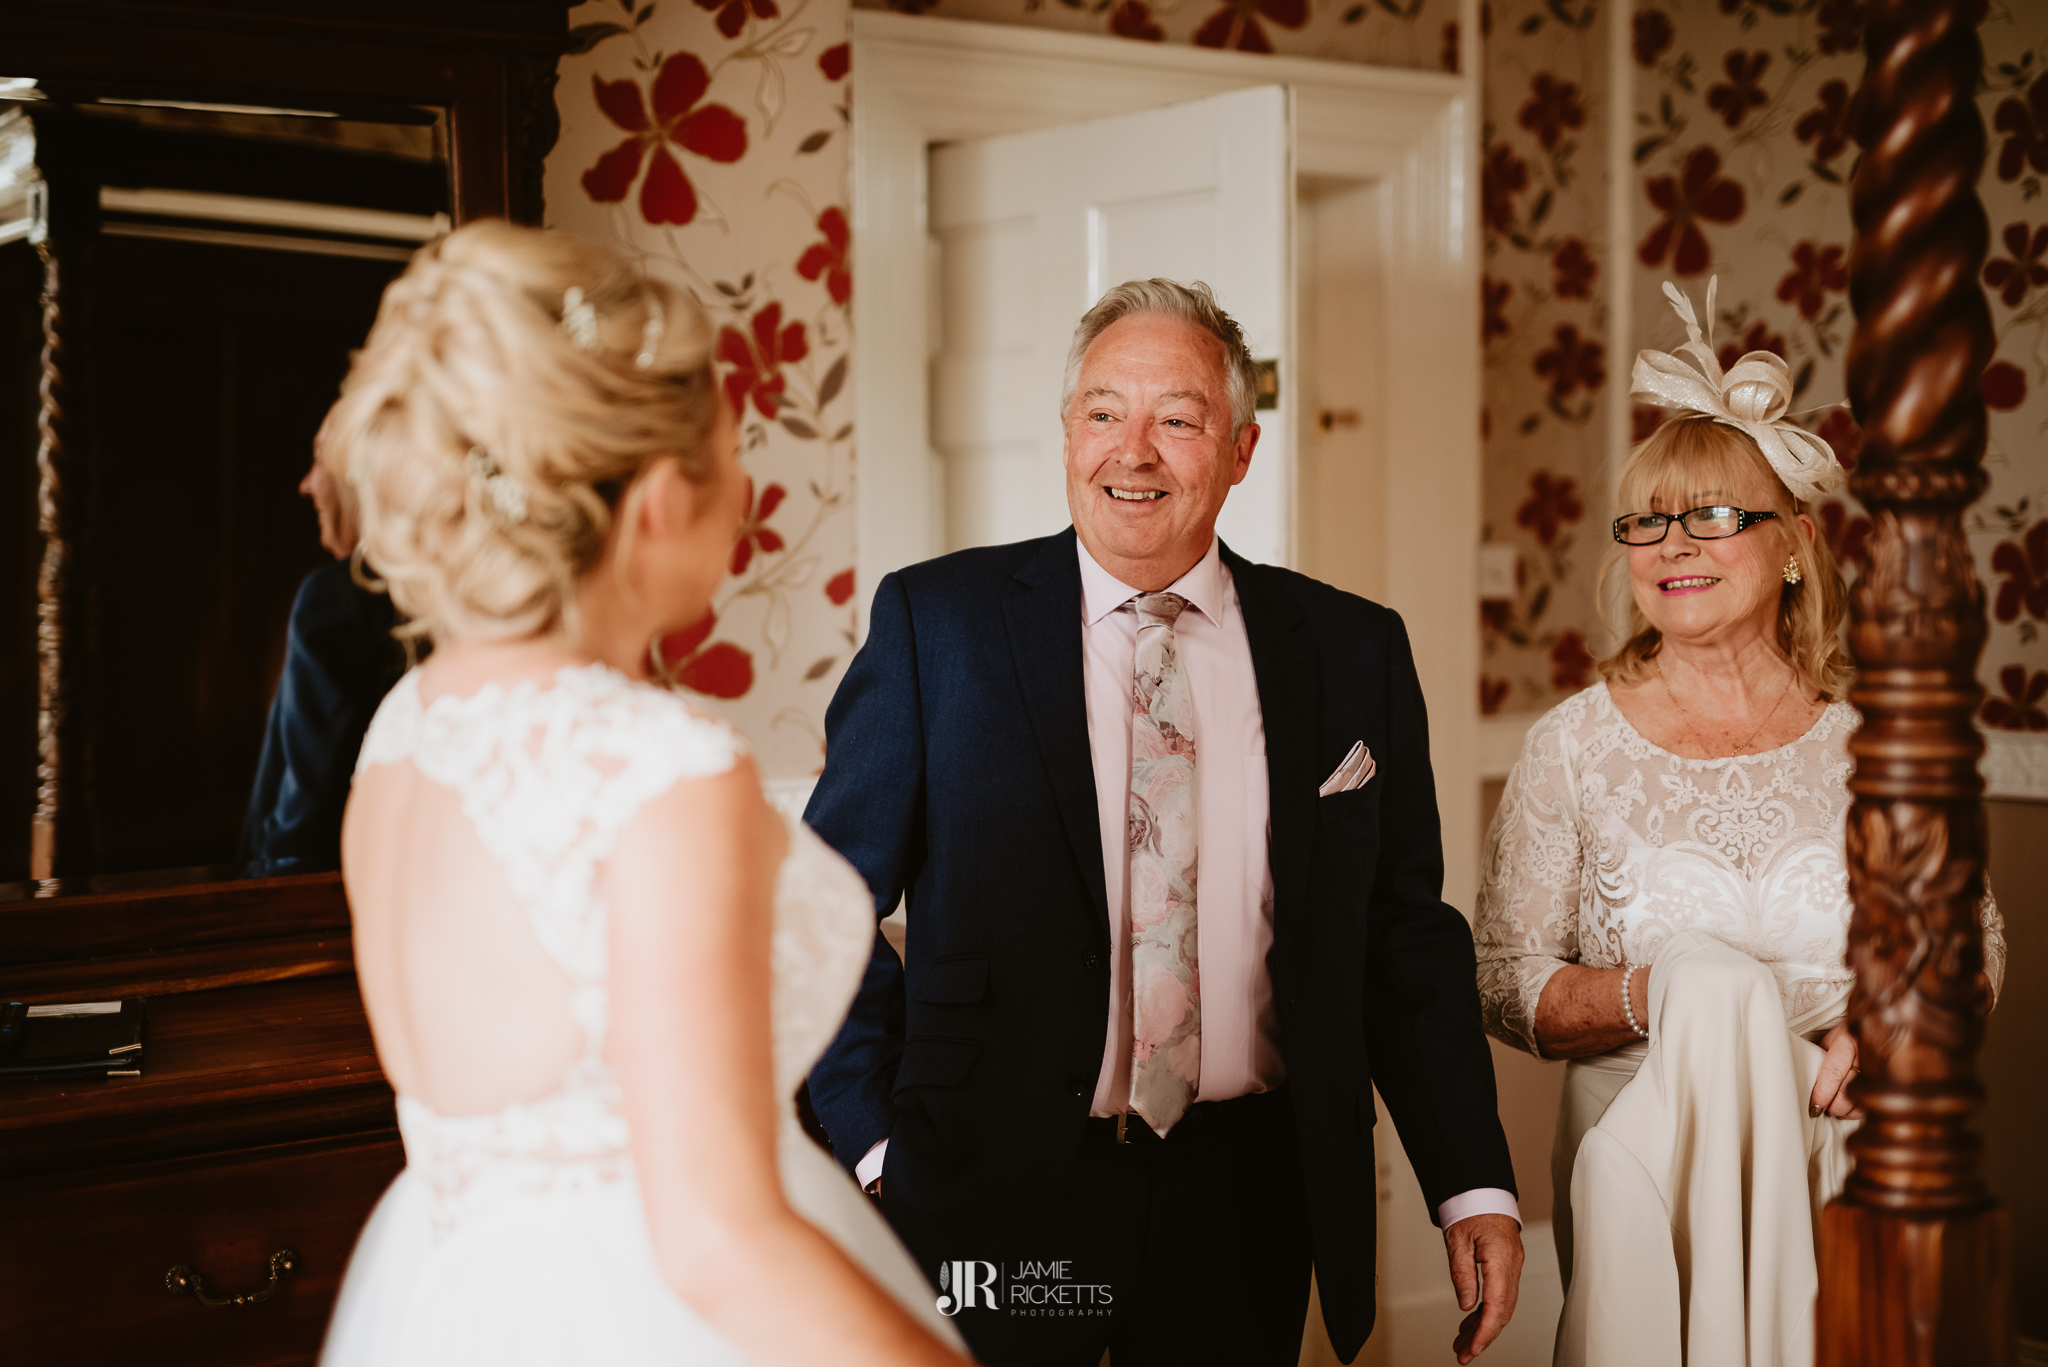 Wroxeter-Hotel-Wedding-Photography-In-Shropshire-By-Shropshire-Wedding-Photographer-Jamie-Ricketts-040.JPG